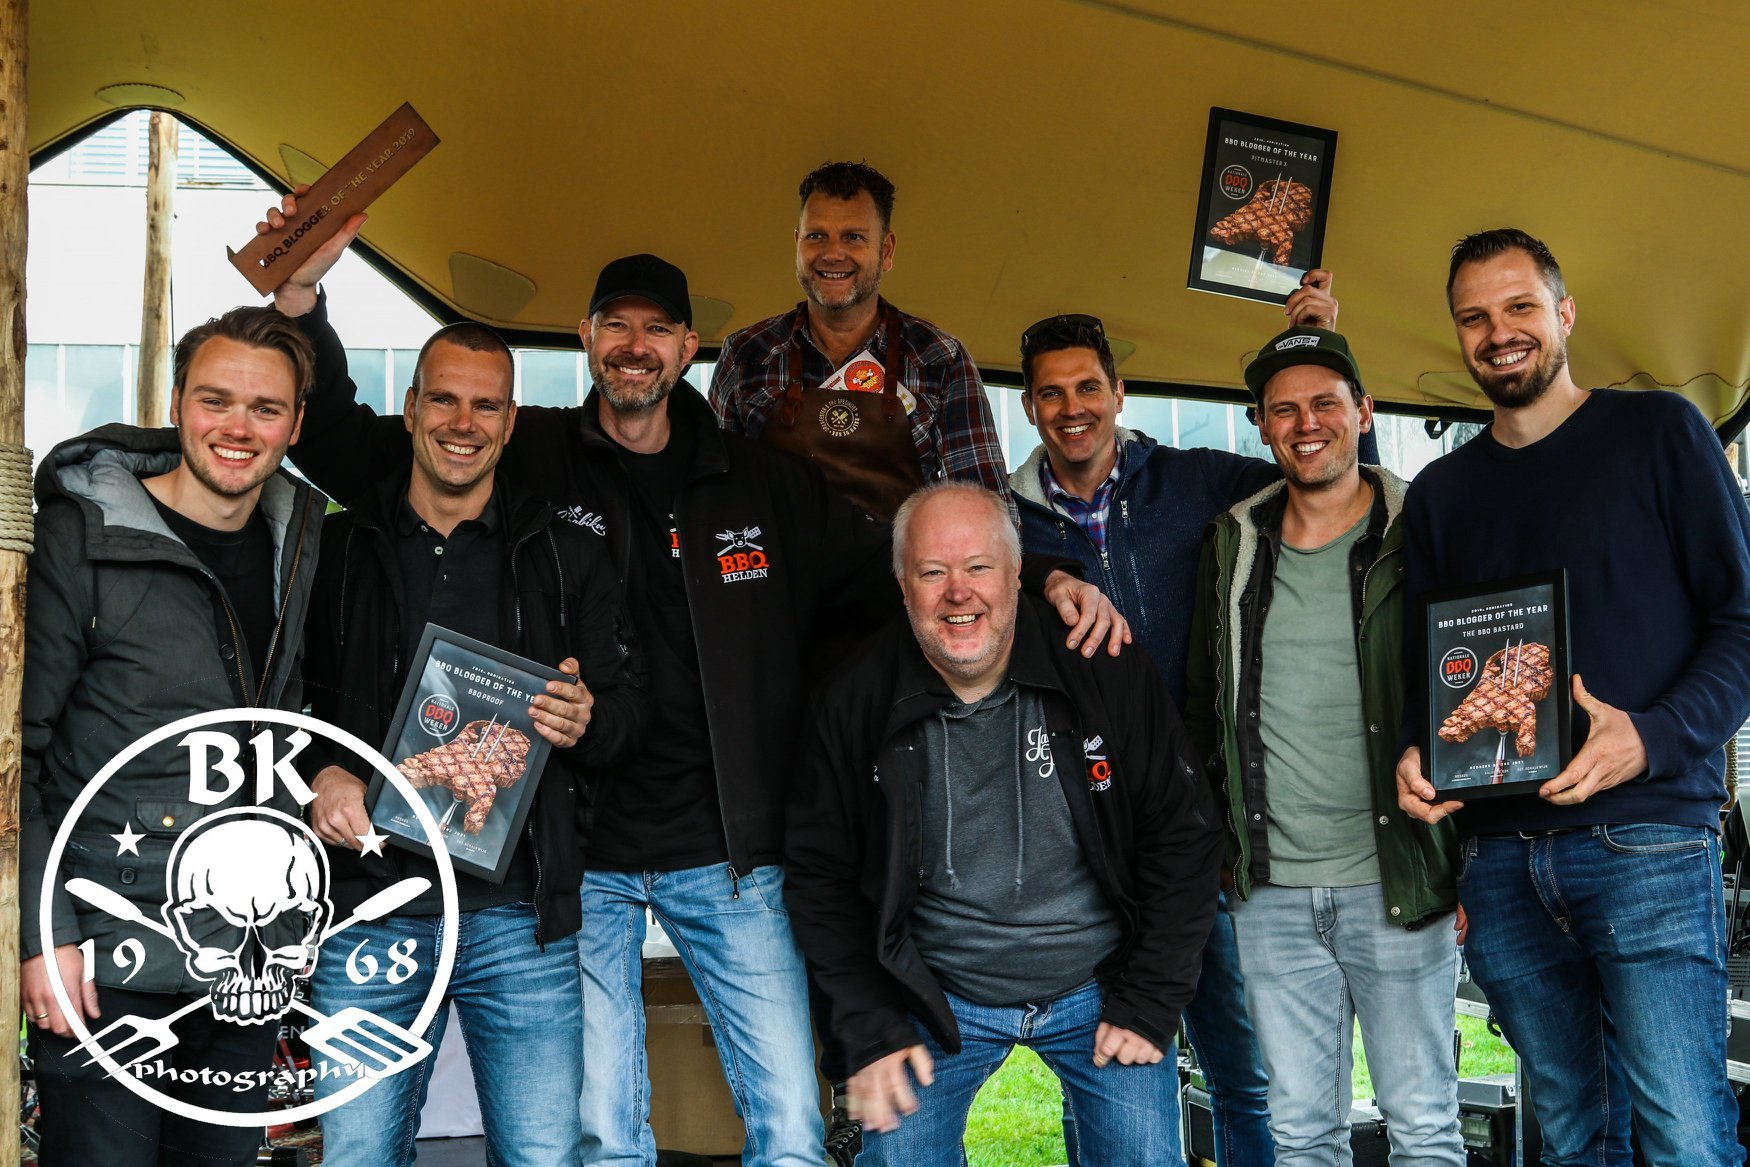 BBQ-blogger awards 2019!